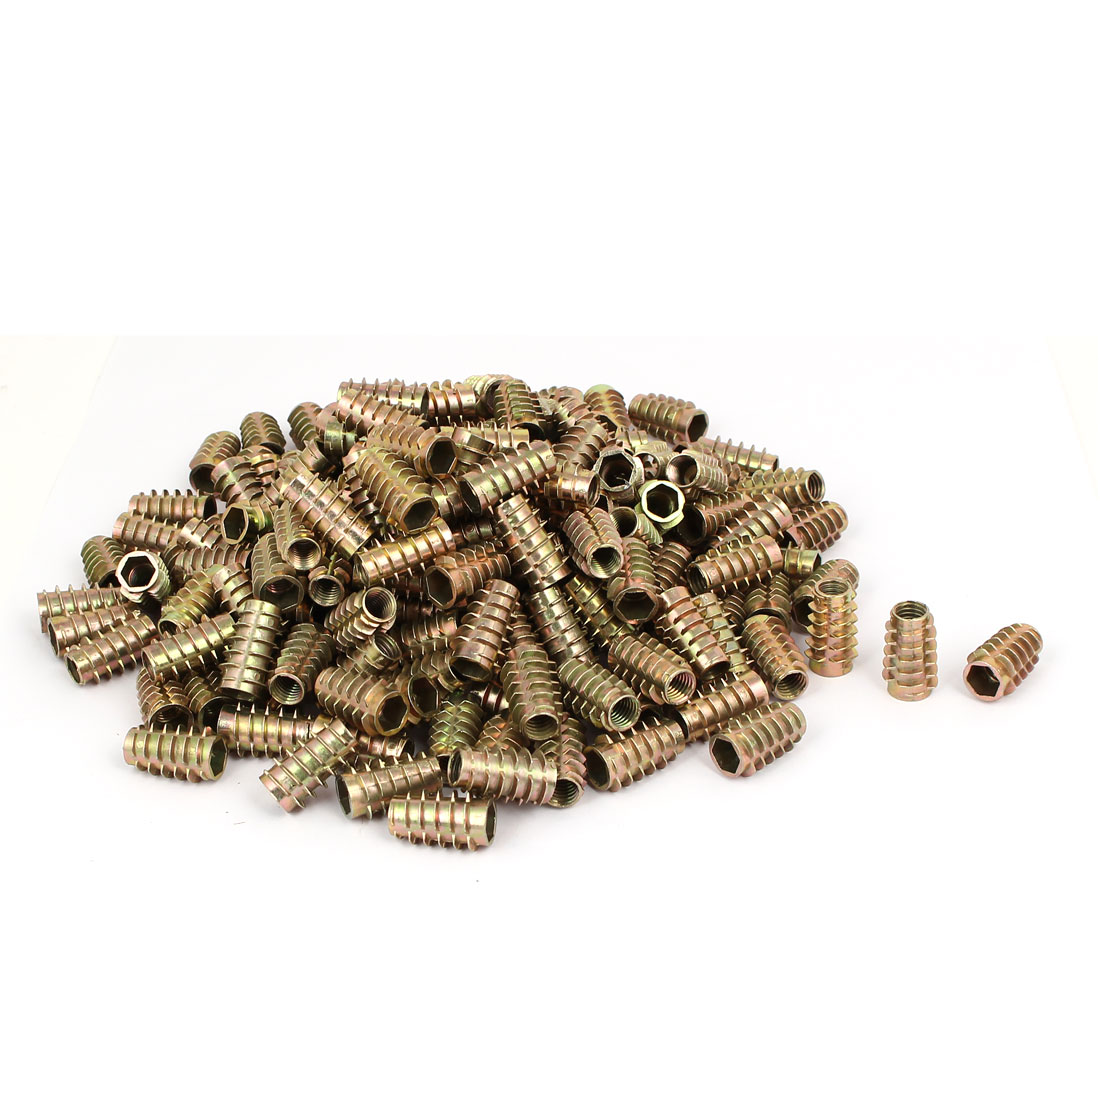 Wood Furniture Zinc Alloy Hex Socket Insert Screws E-Nuts M8x25mm 200pcs